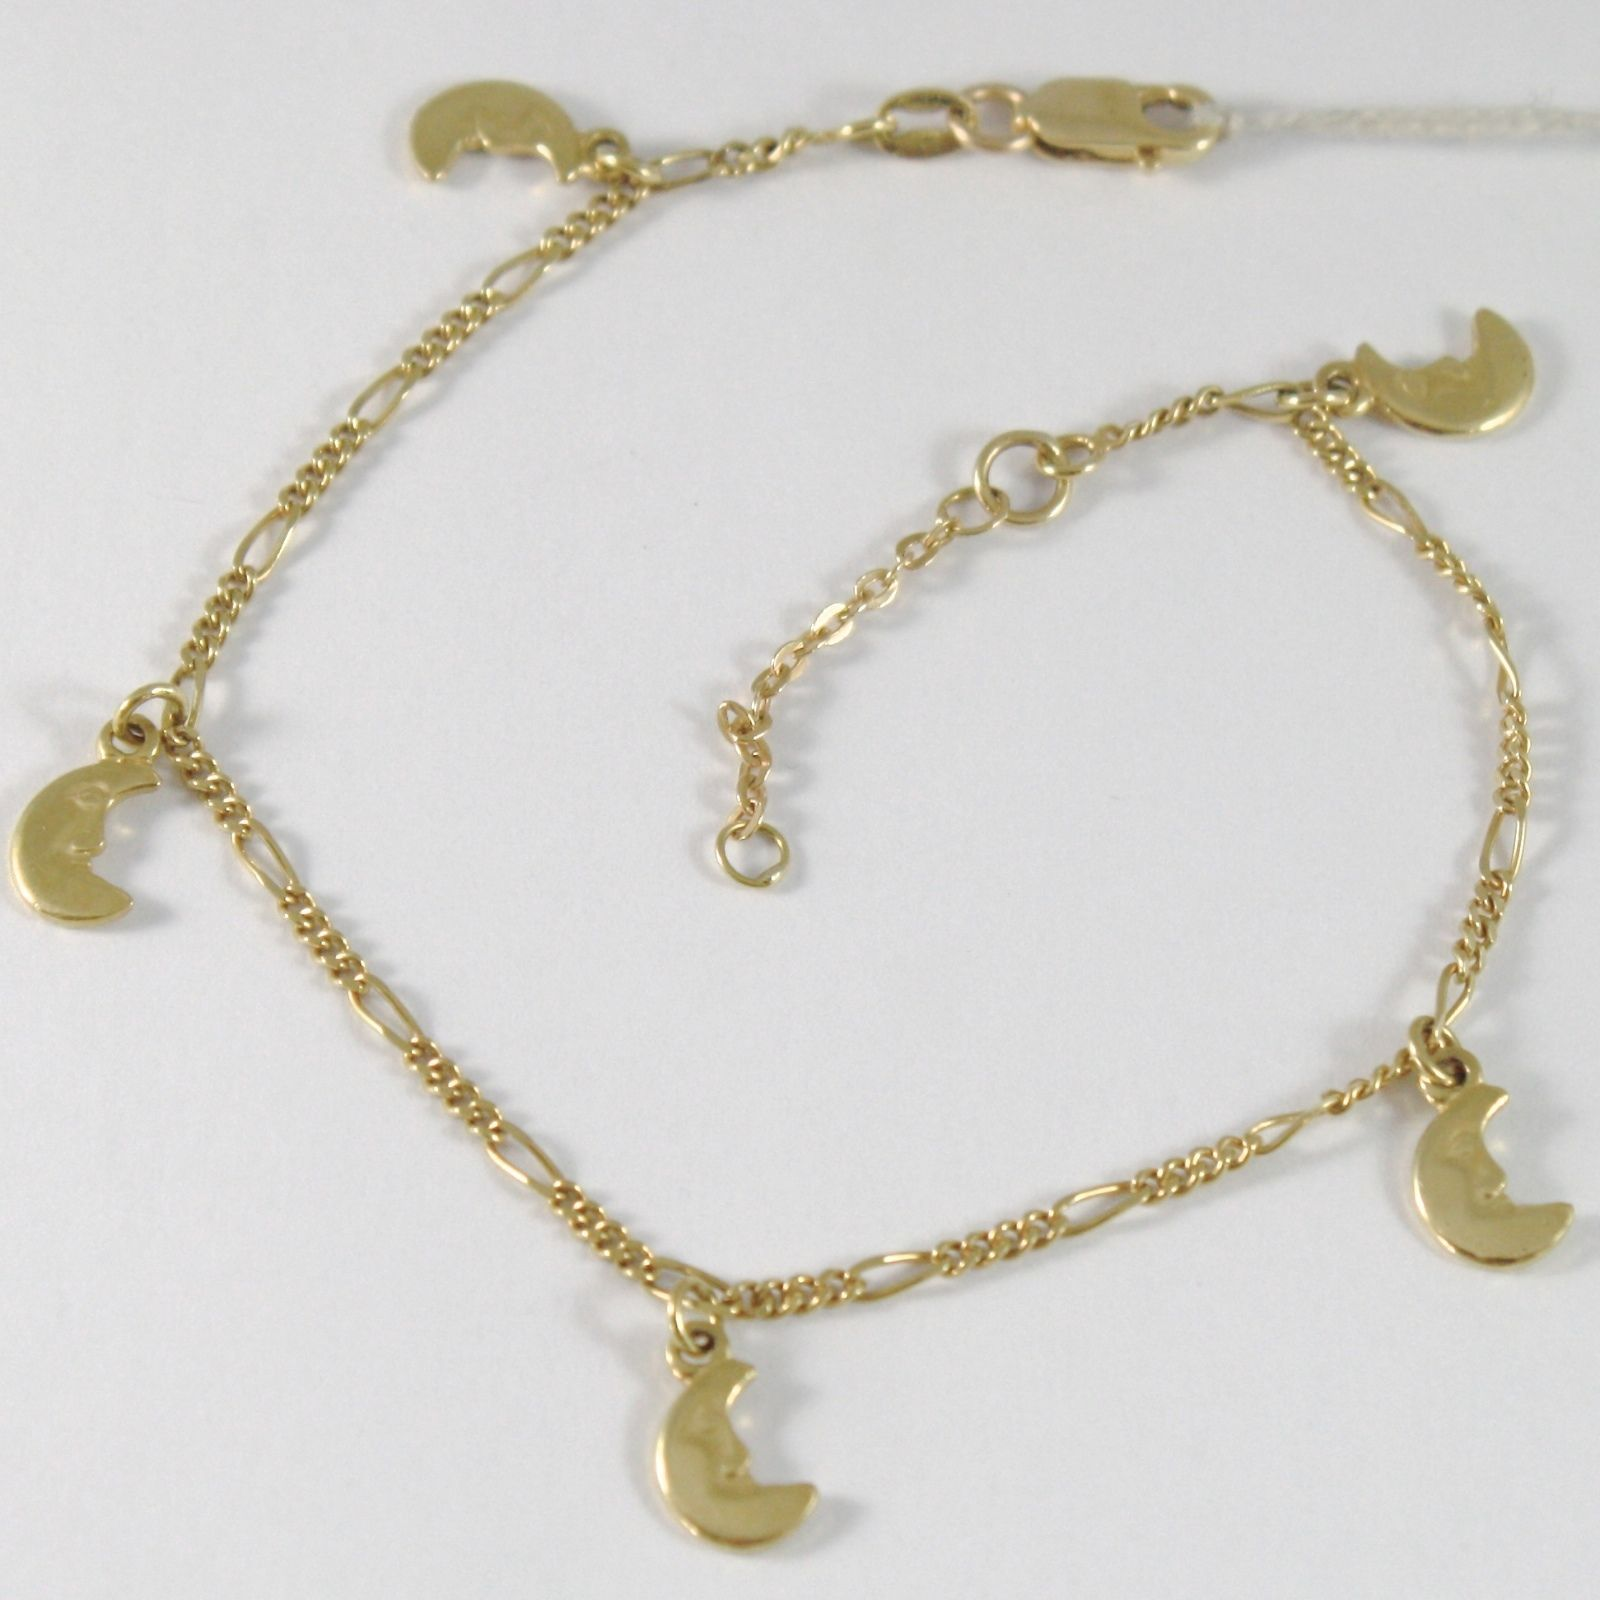 BRACELET YELLOW GOLD 750 18K, LUNE HANGING, LUNA PENDANT, LONG 18.5-21 CM